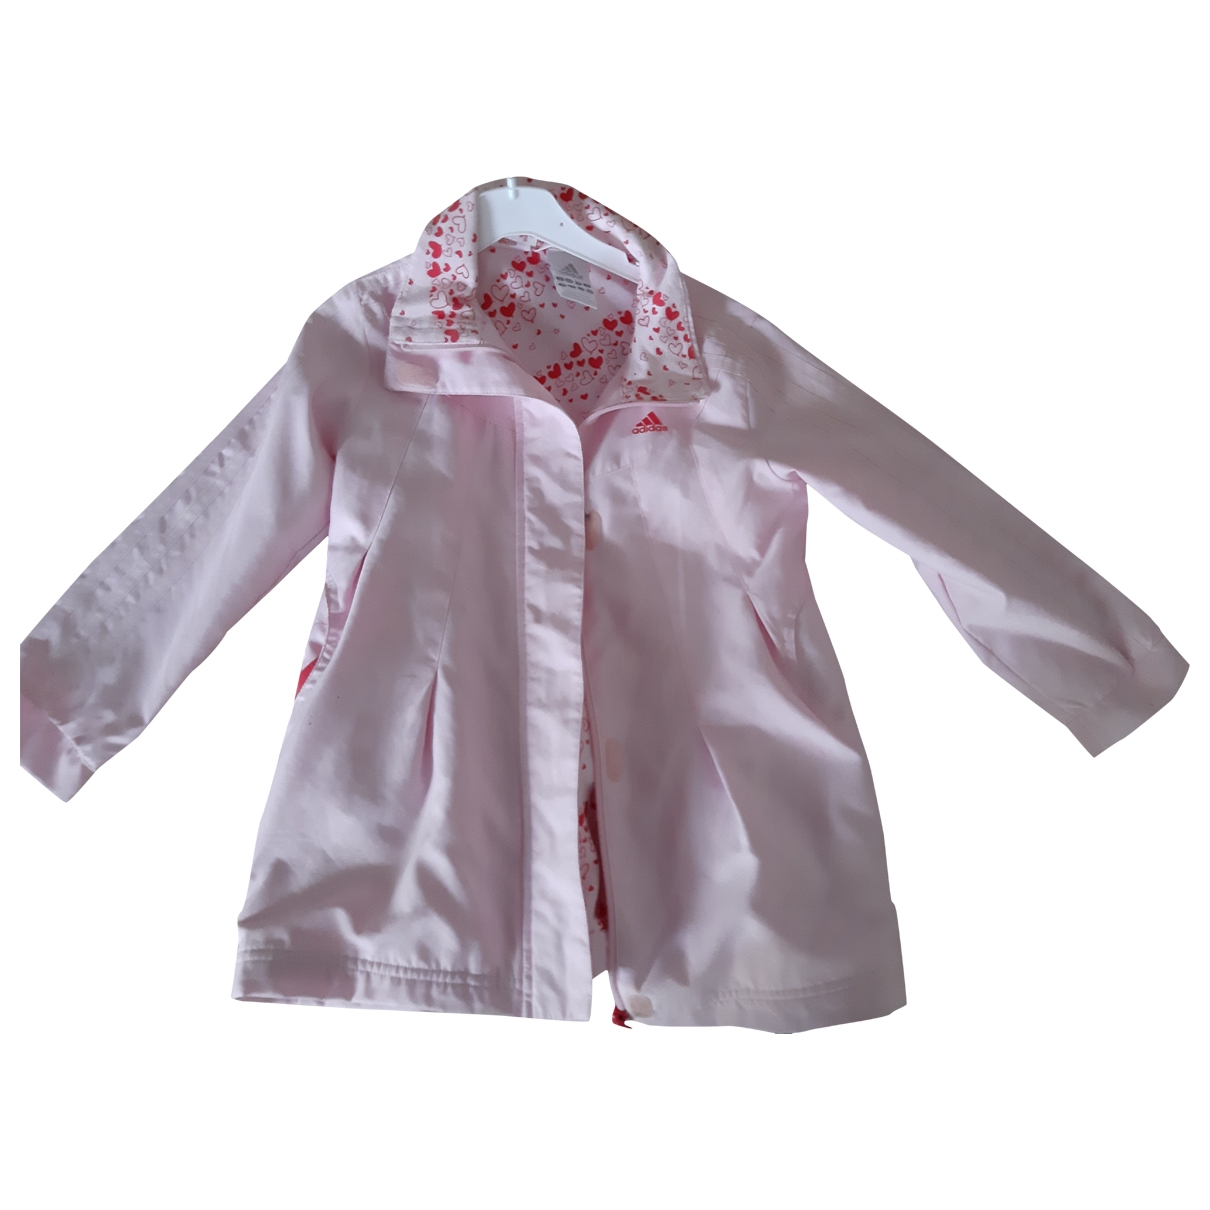 Adidas \N Pink jacket & coat for Kids 5 years - up to 108cm FR